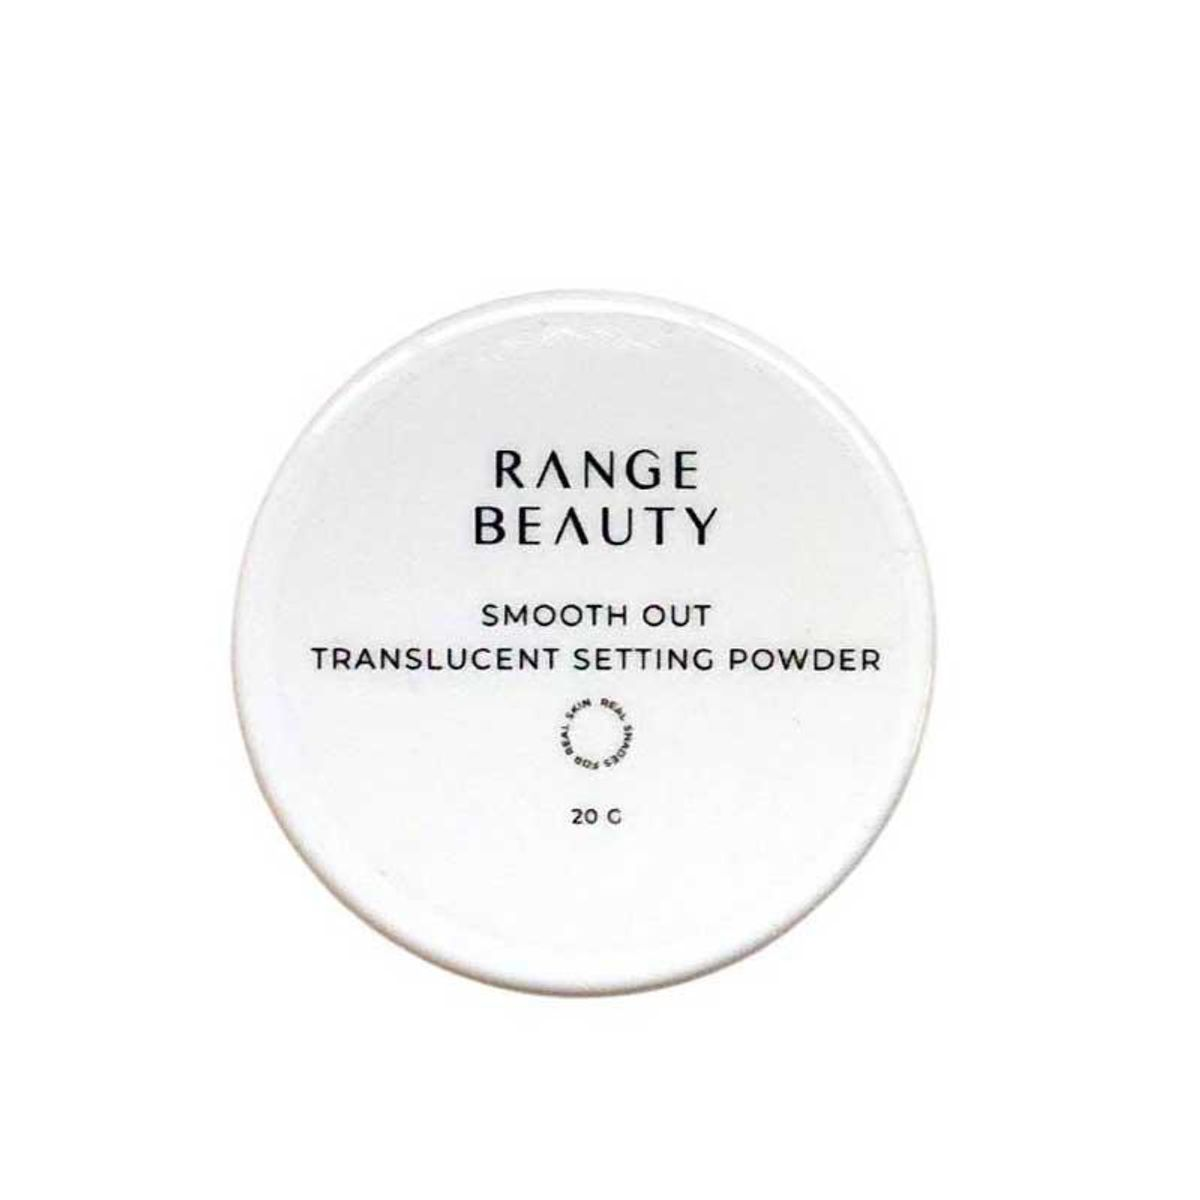 range beauty smooth out